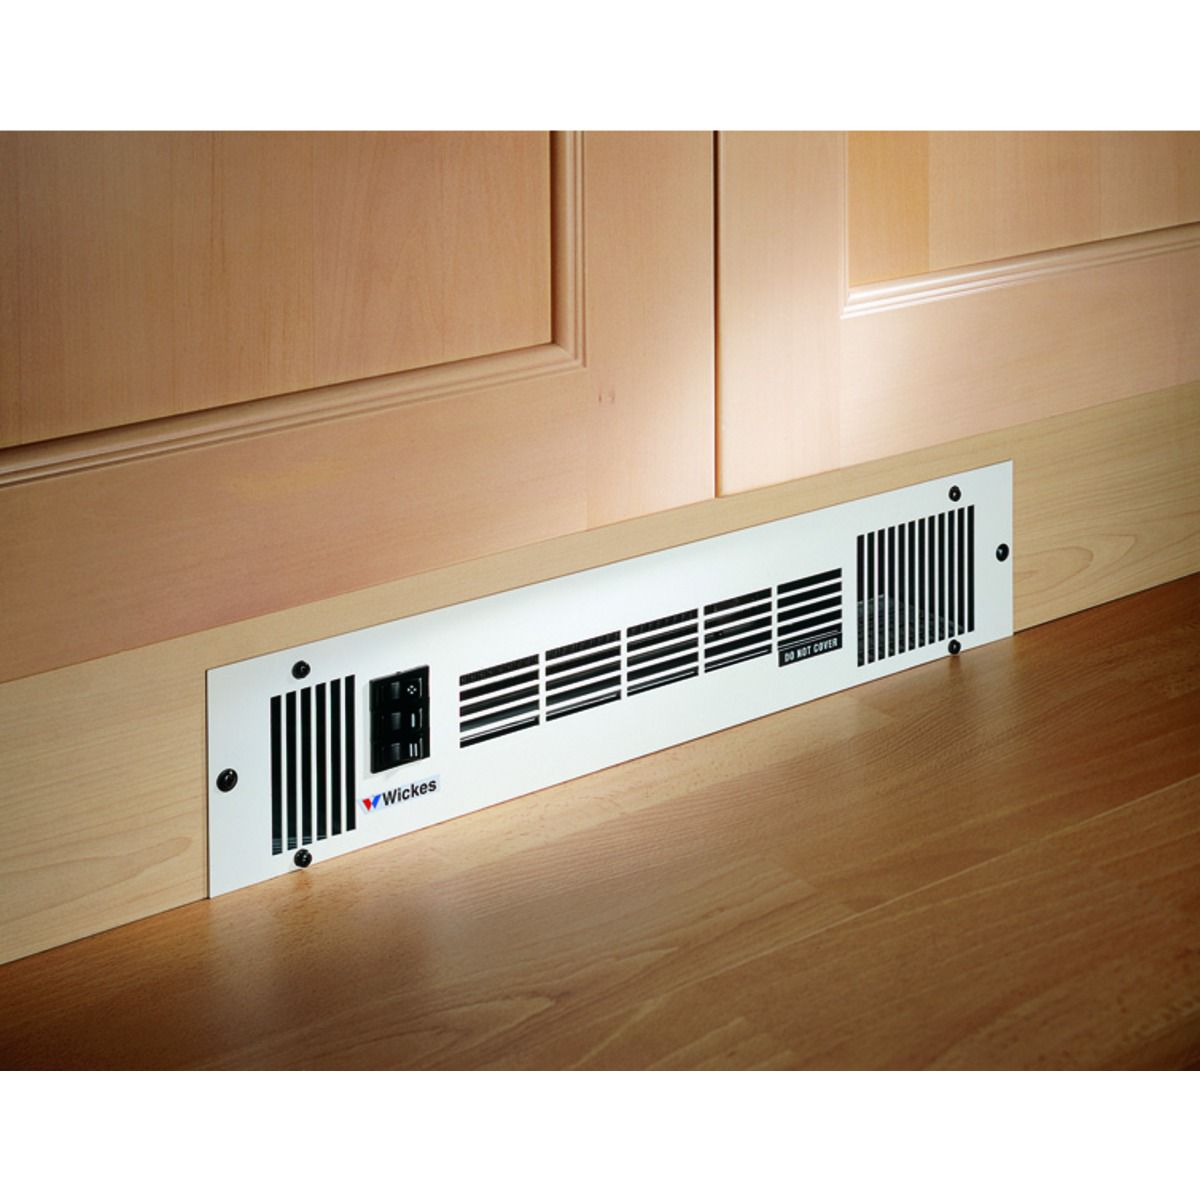 Wickes Central Heating Stainless Steel Plinth Heater   1.6kW | Wickes.co.uk